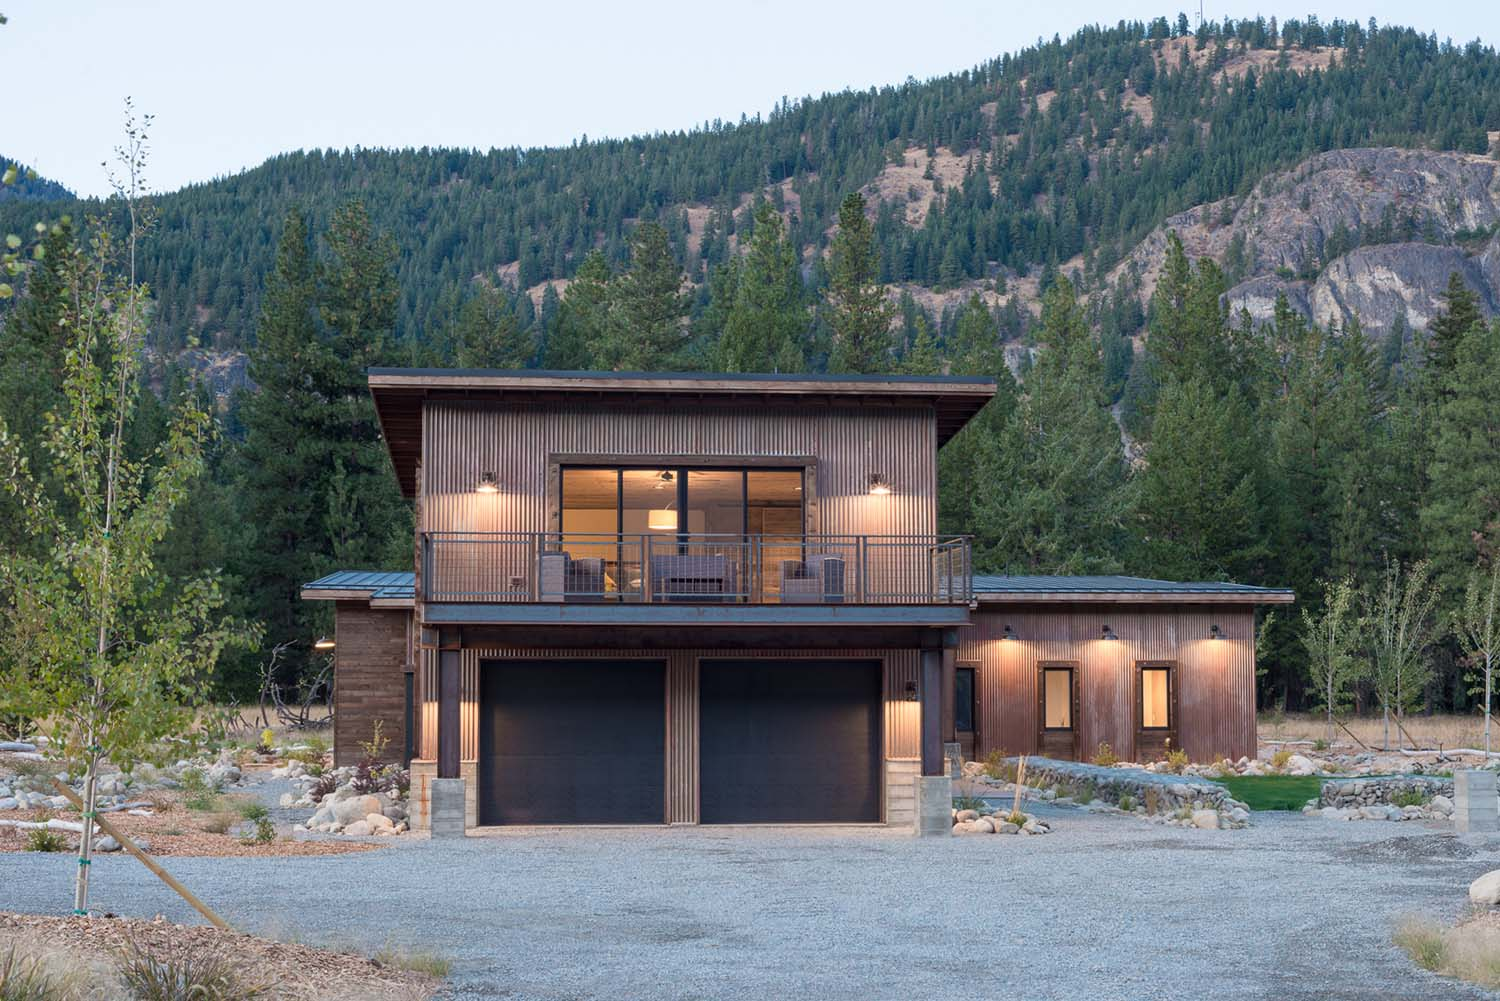 WEB7+-+Mazama+House+-+Designs+Northwest+Architects+-+Swift+Studio+-+2048px (1).jpg